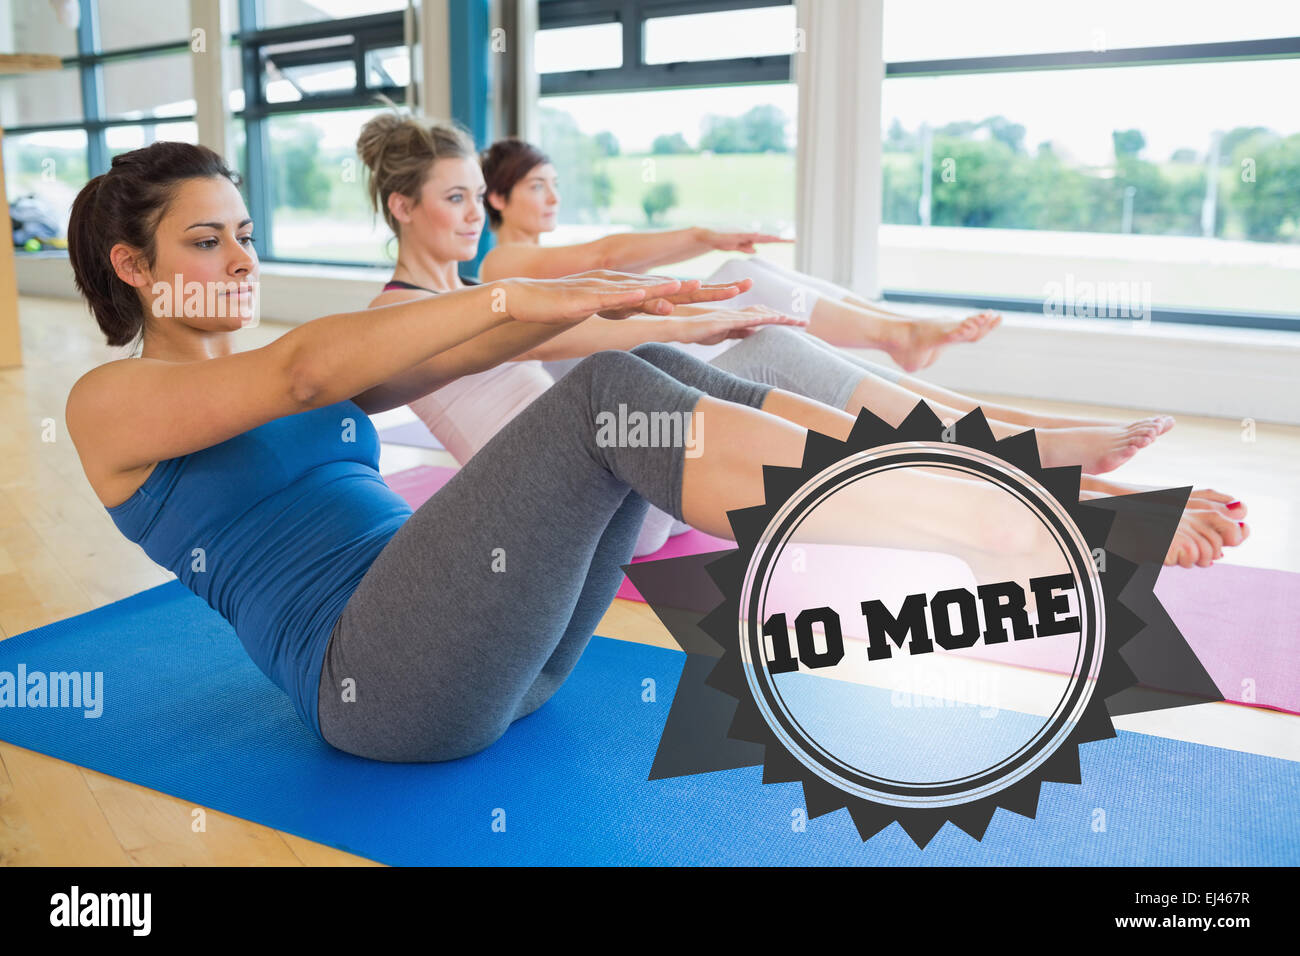 10 more against badge - Stock Image